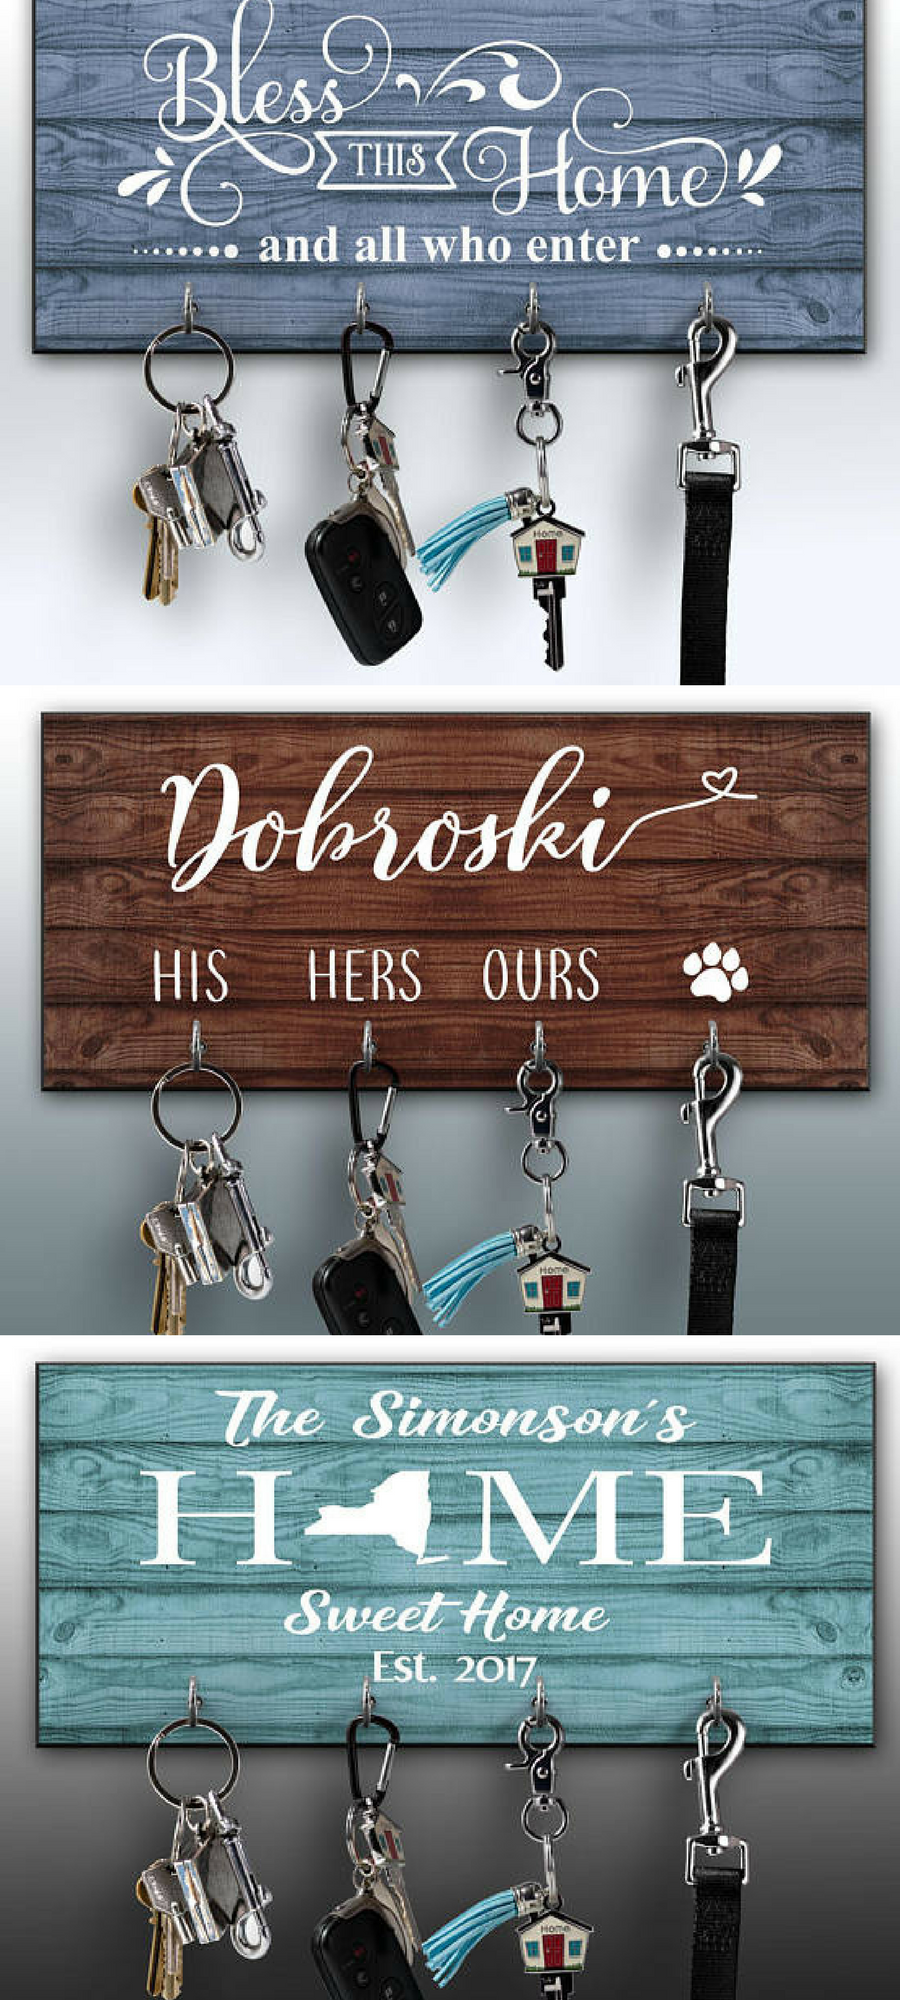 Home Key Holder For Wall Personalized Key Ring Holder Family Key Holder Home Key Rack